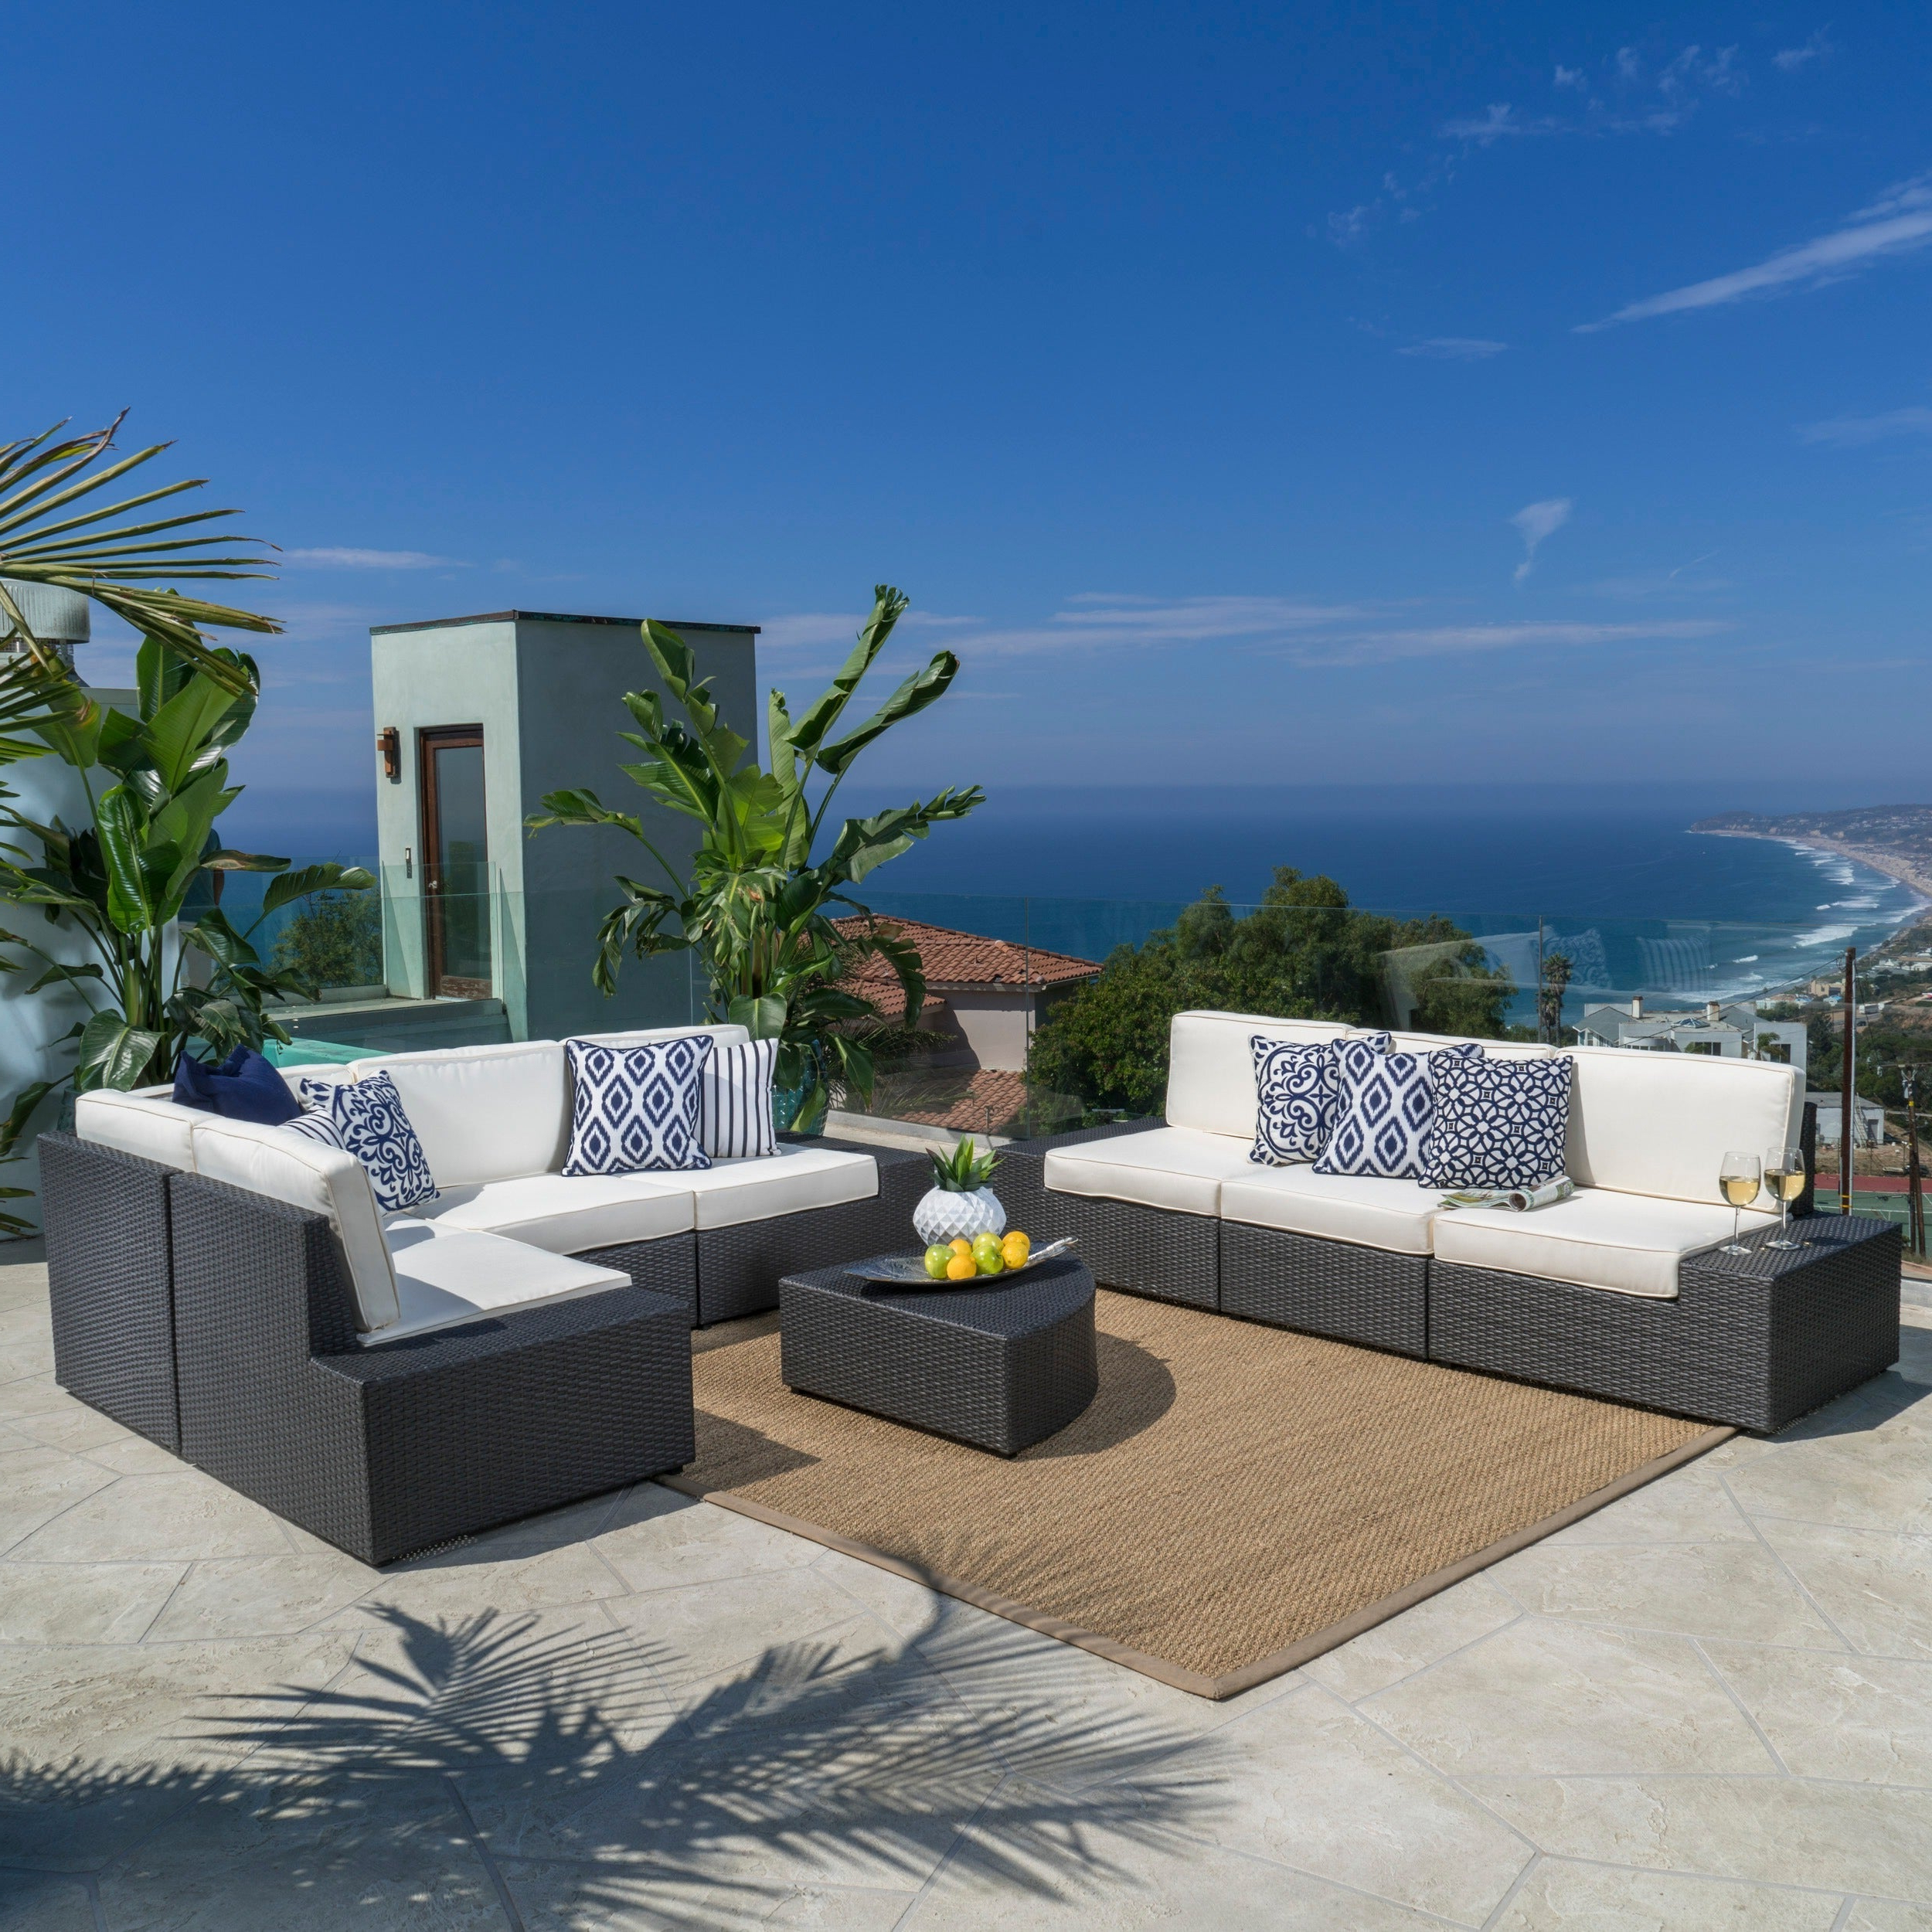 Well Known Details About Santa Cruz Outdoor 8 Piece Wicker Sectional Sofa Set With In Catalina Outdoor Right Arm Sectional Pieces With Cushions (Gallery 12 of 25)